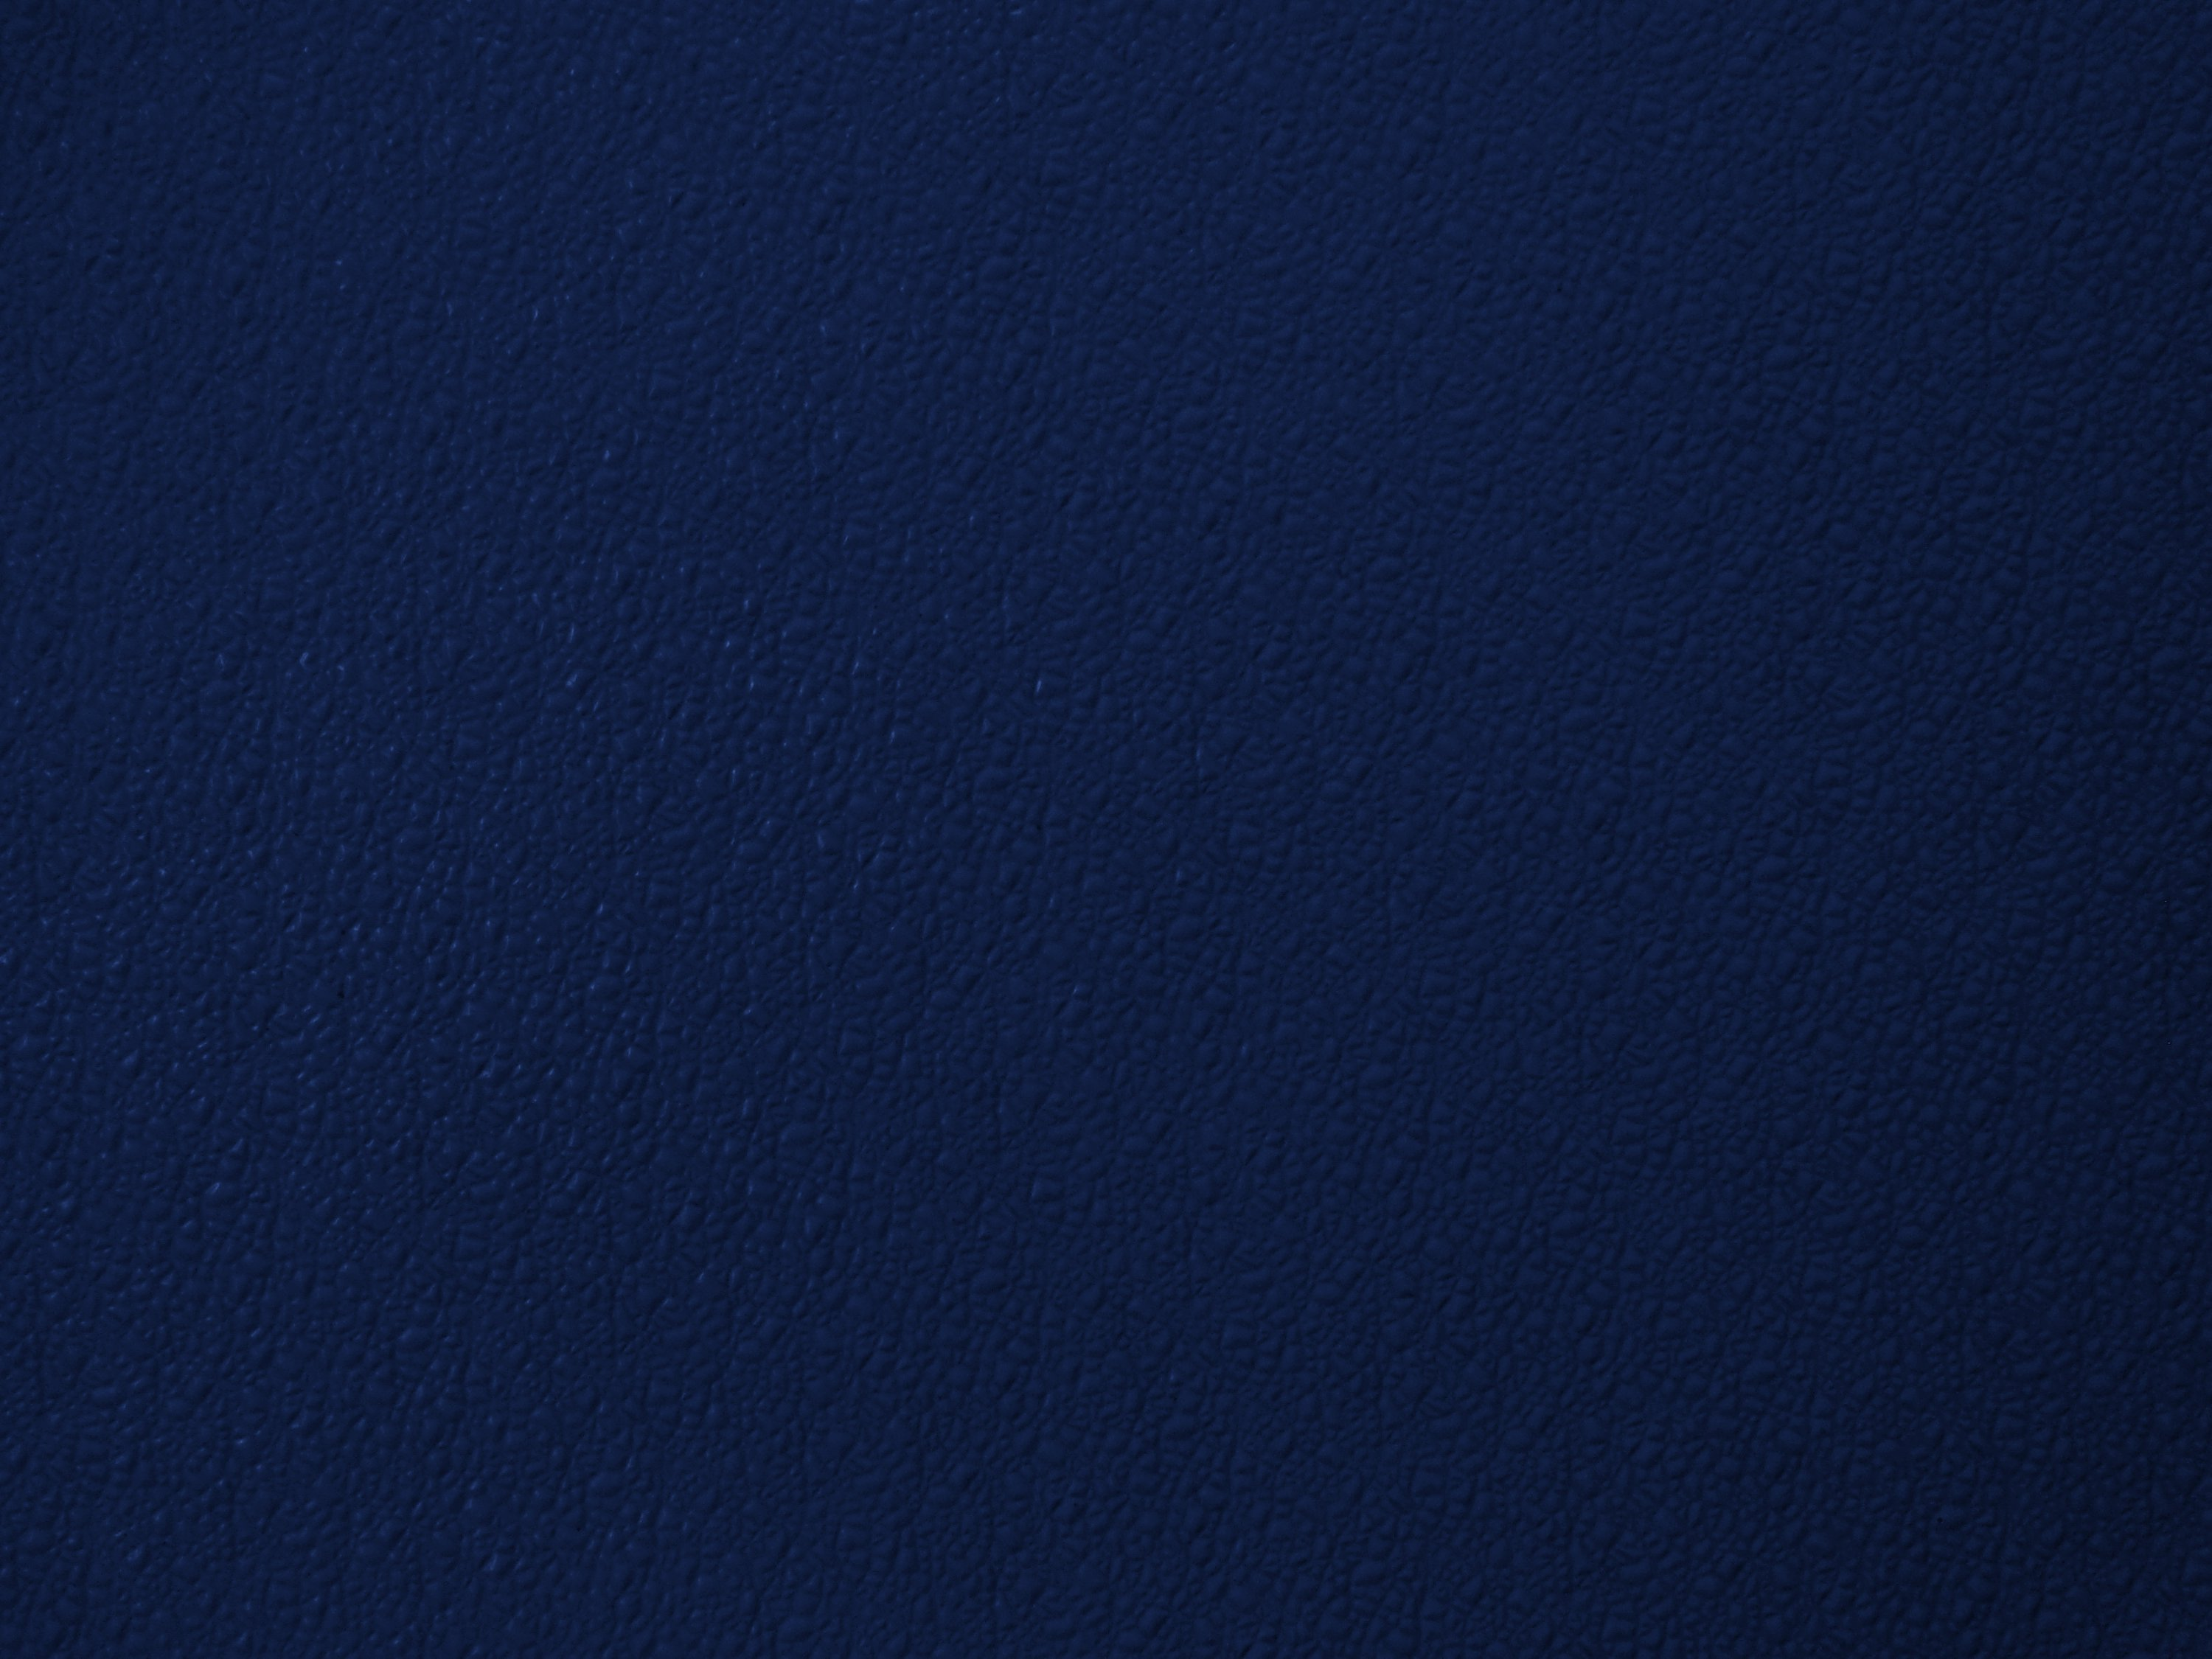 Navy Blue Bumpy Navy Blue Plastic Texture Picture Free Photograph